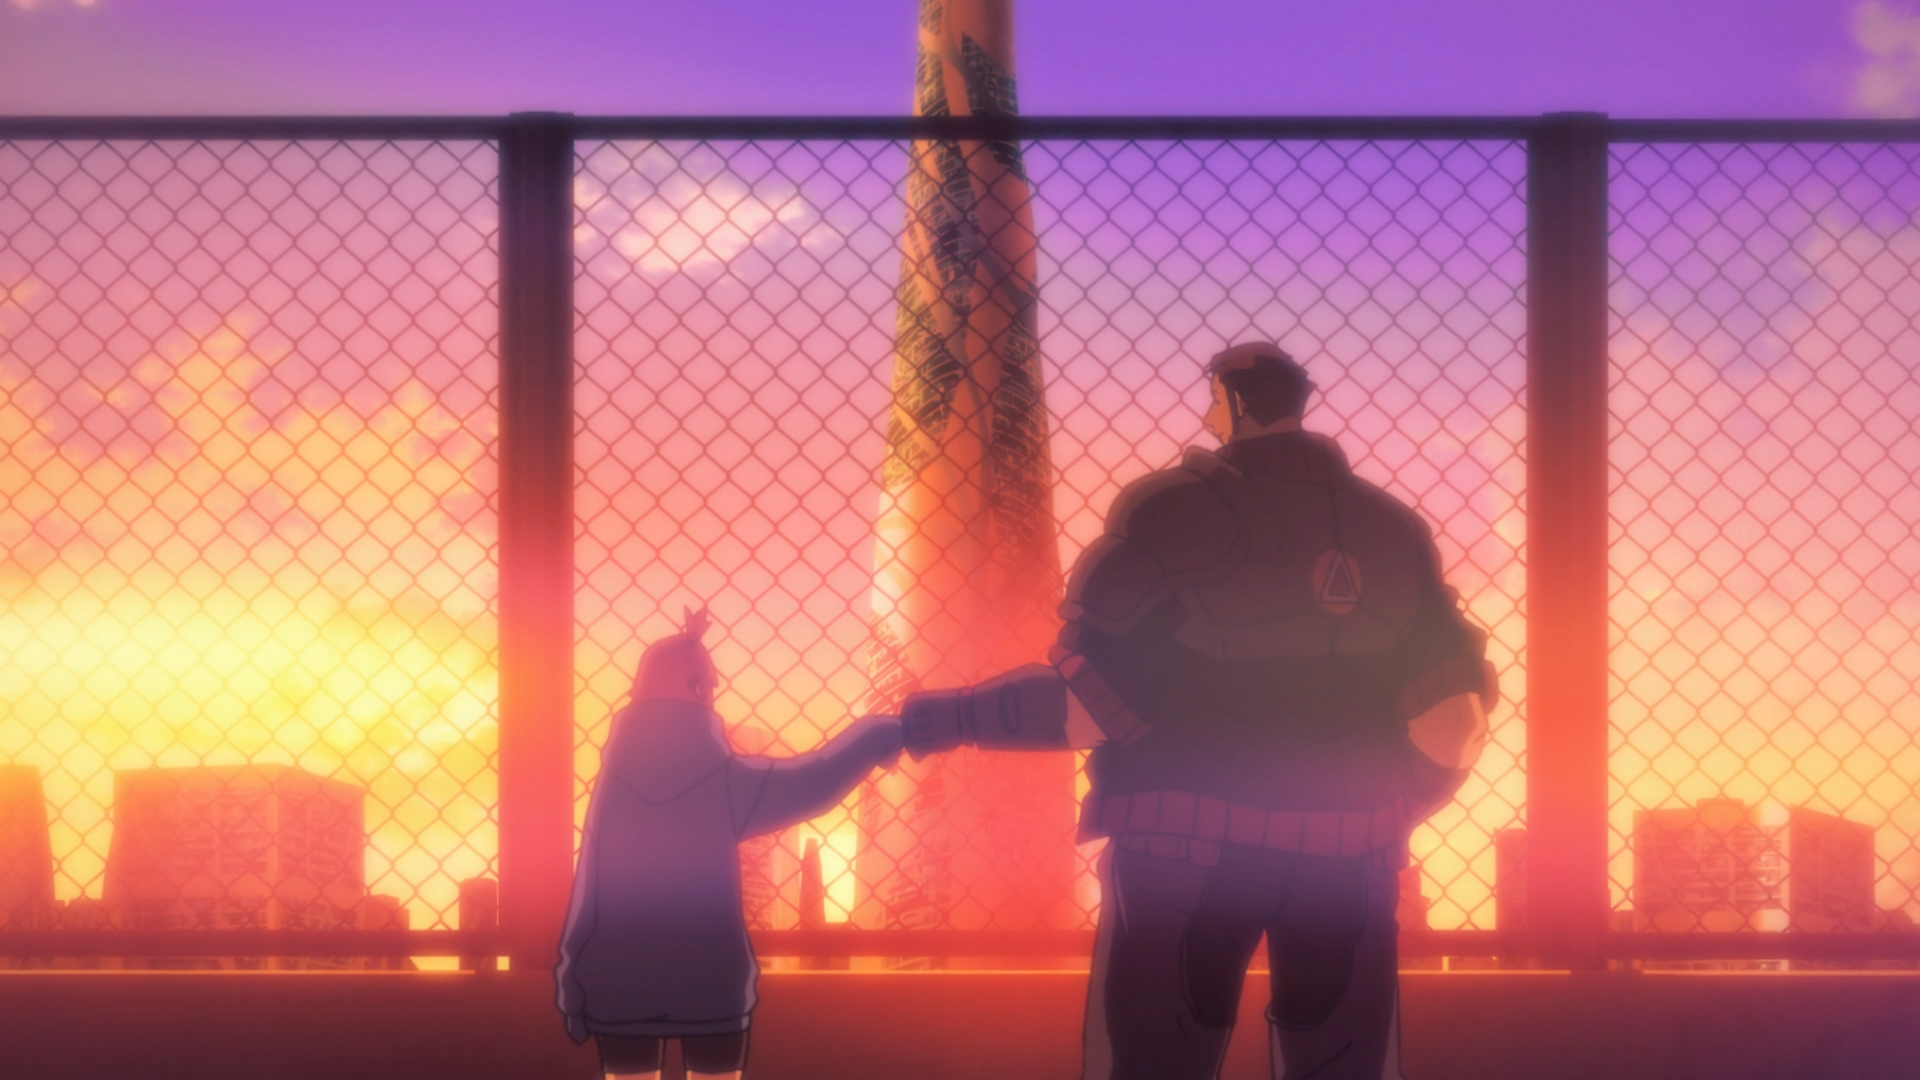 Garo: Vanishing Line / Episode 19 / Sophie and Sword and their wholesome friendship